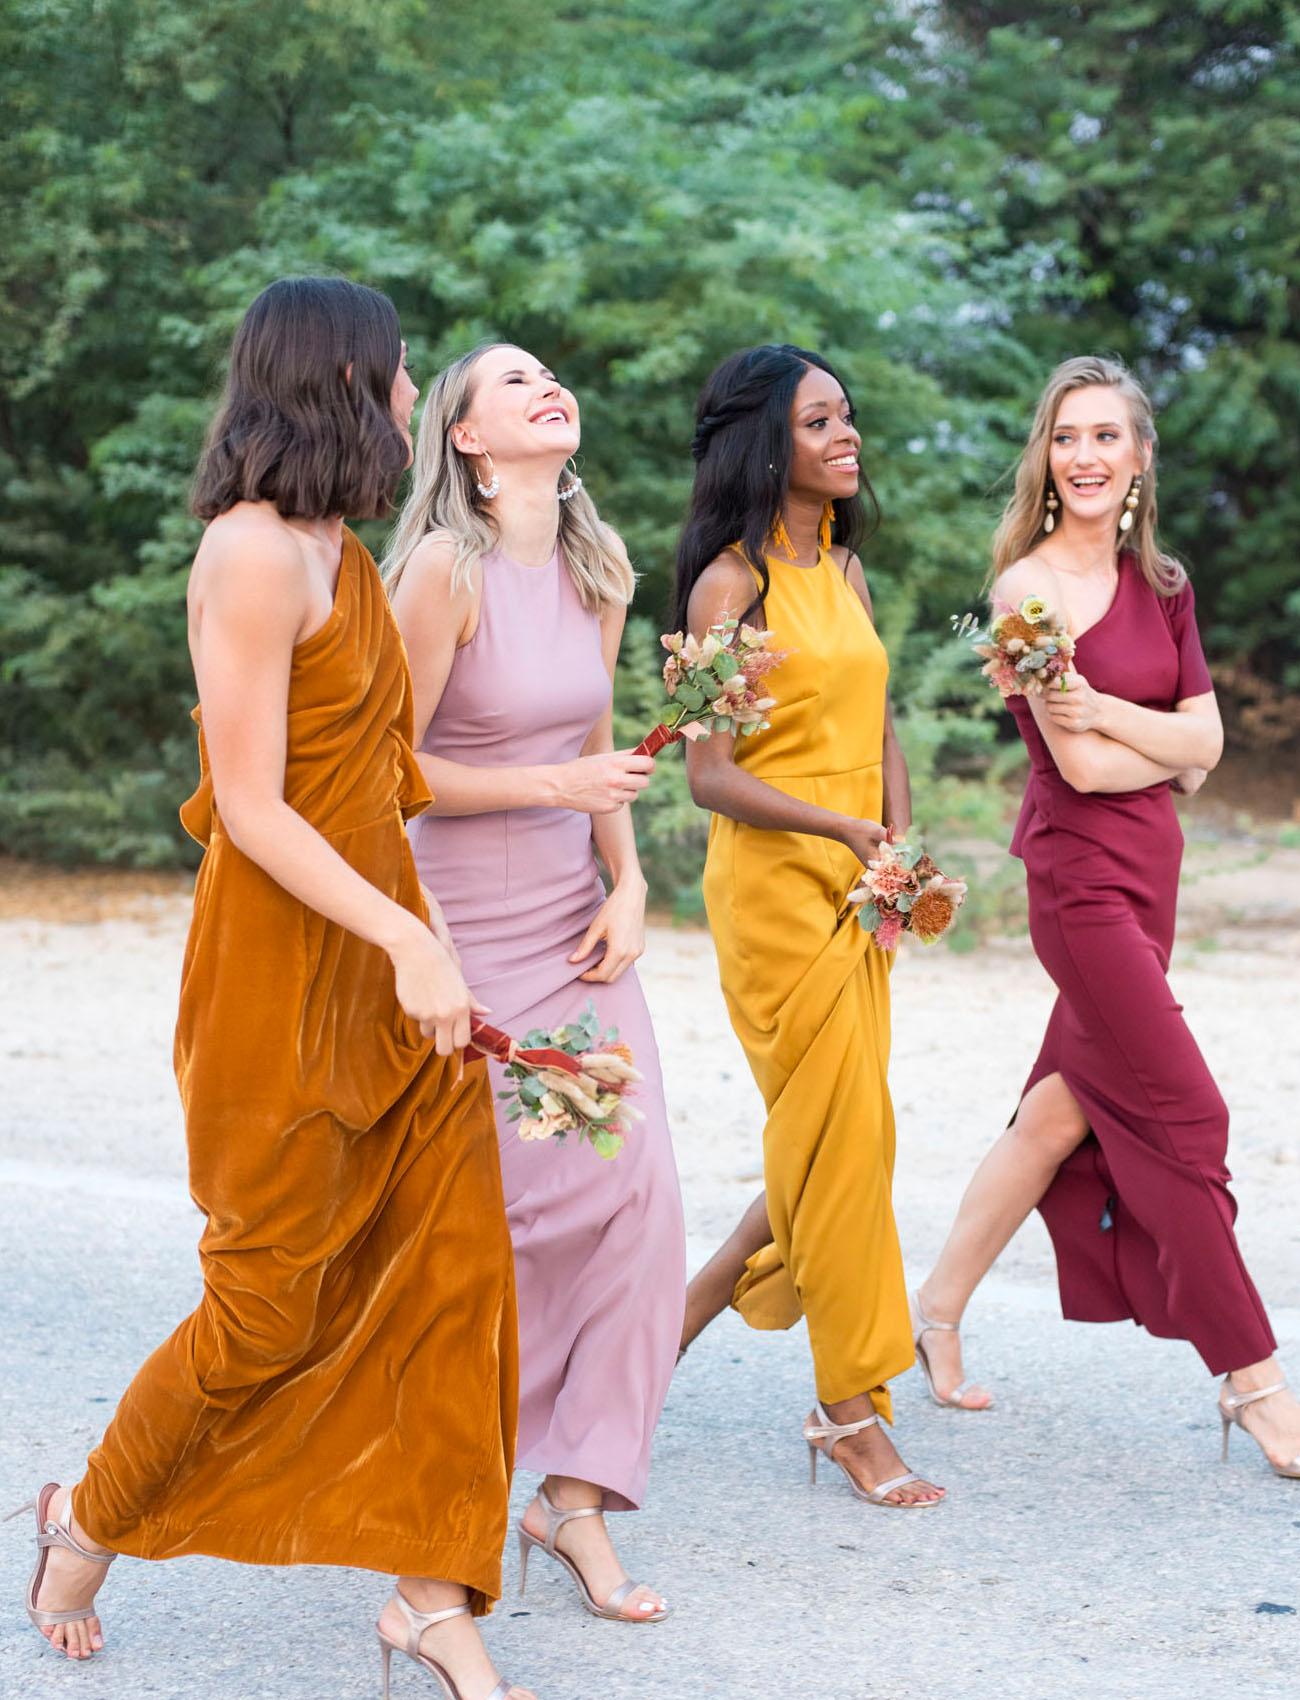 The bridesmaids were wearing maxi bridesmaid dresses in various bright shades